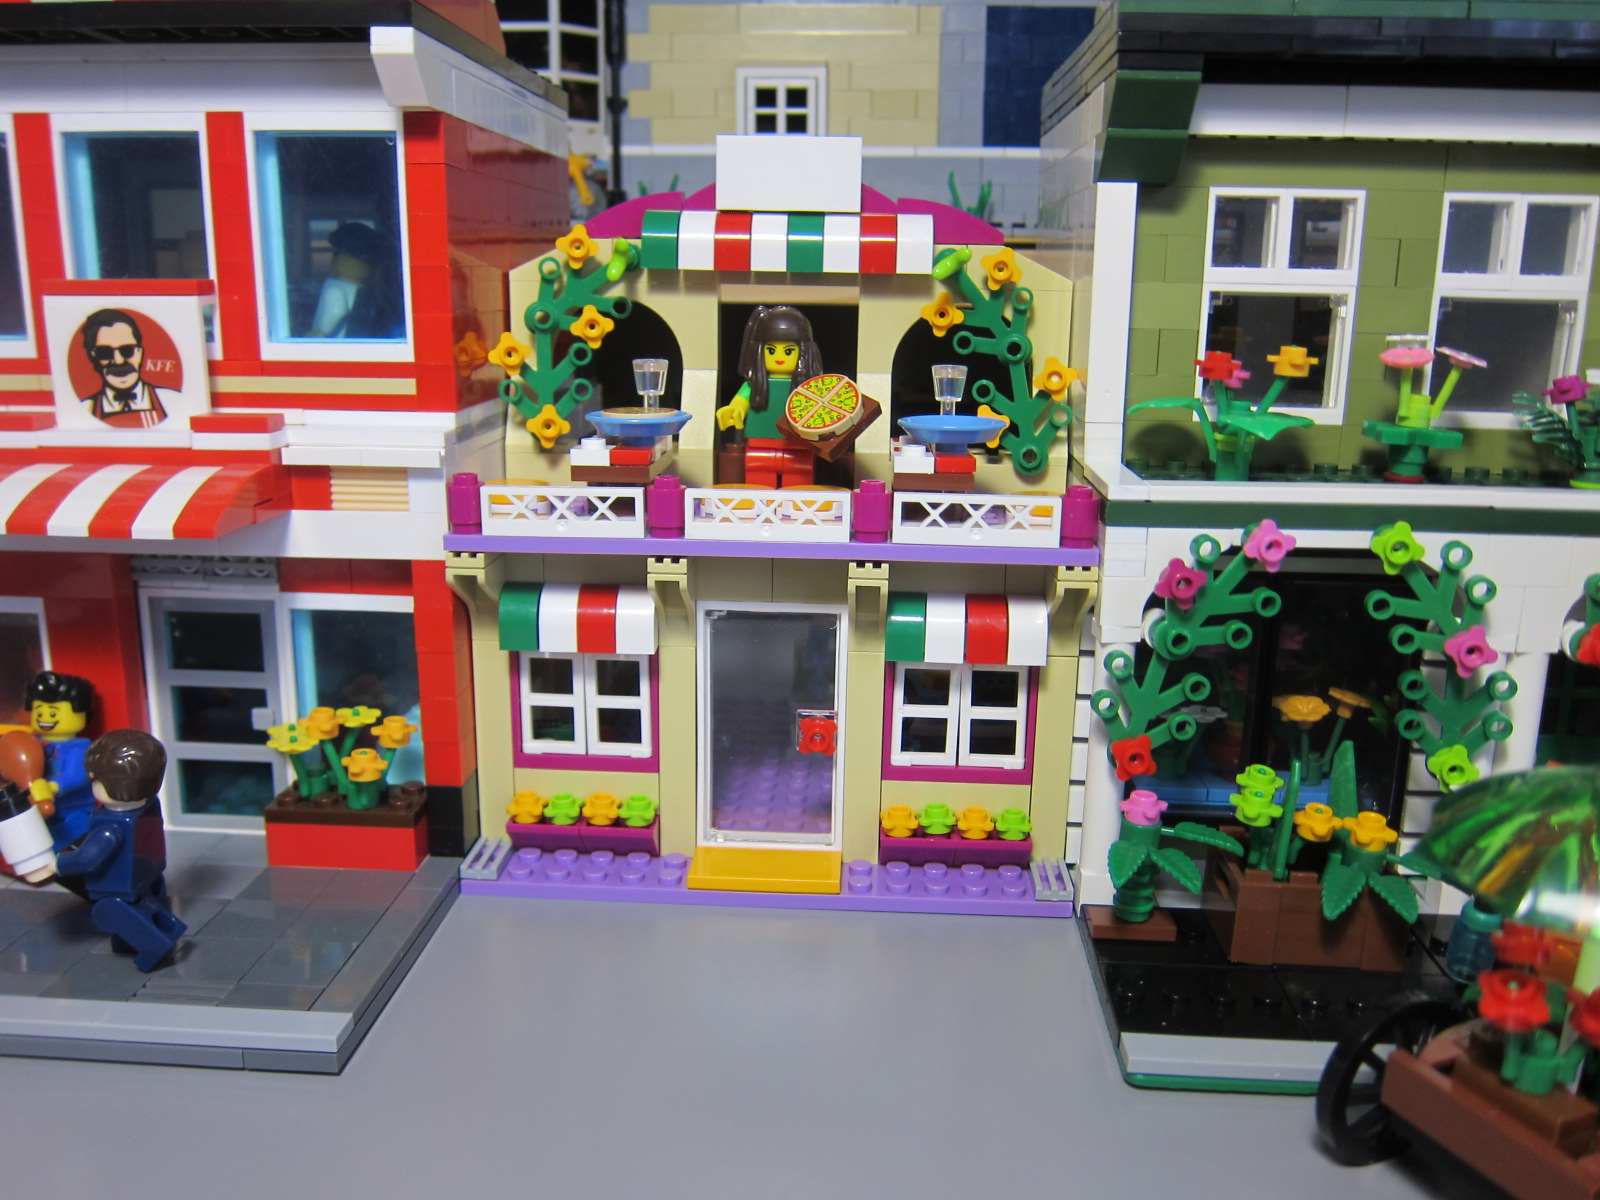 Lepin 01011 Friends Pizzeria Fake Lego Building Set Review